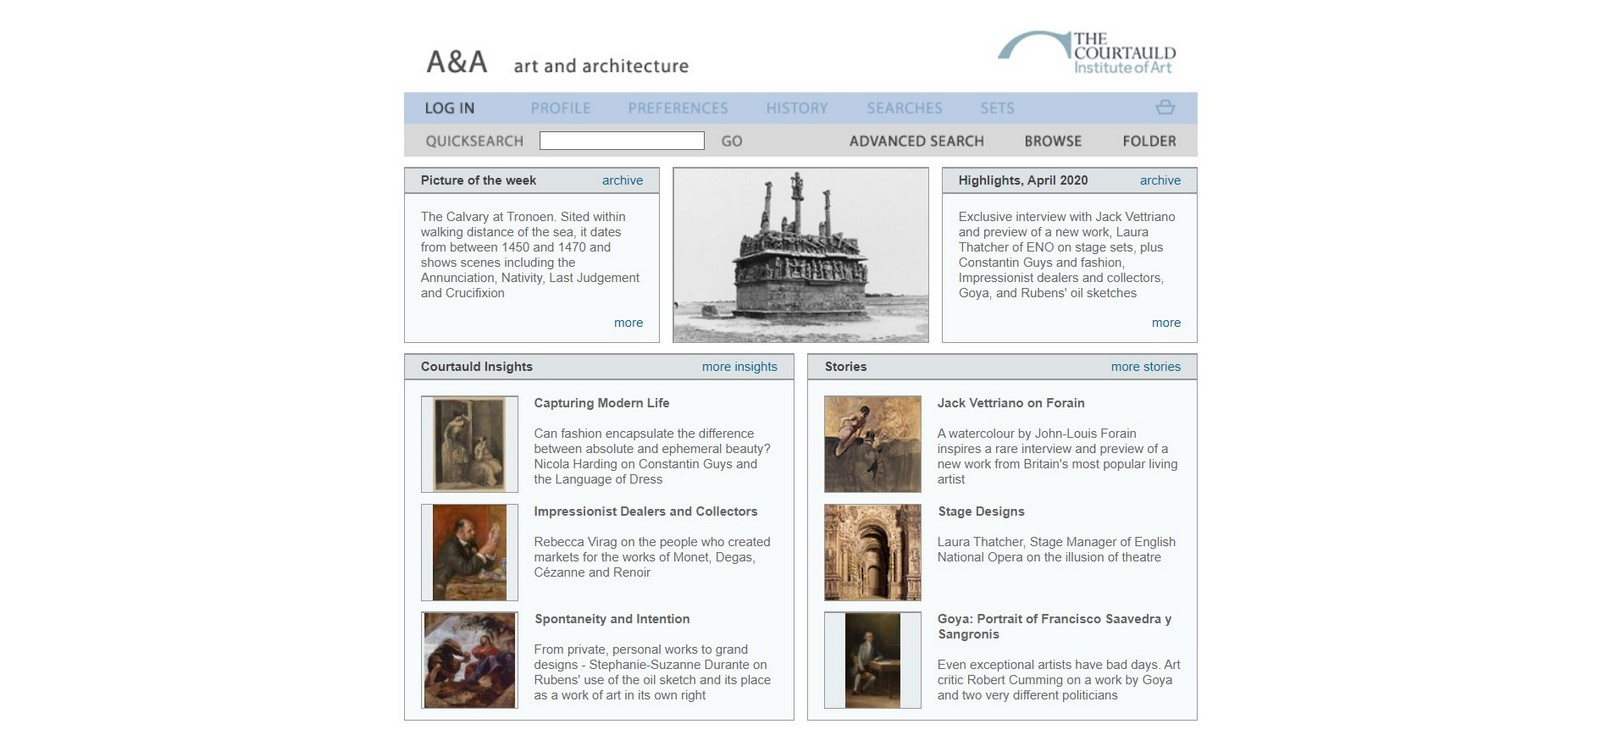 12 Websites That Can Aid Architectural Thesis Research - Sheet5